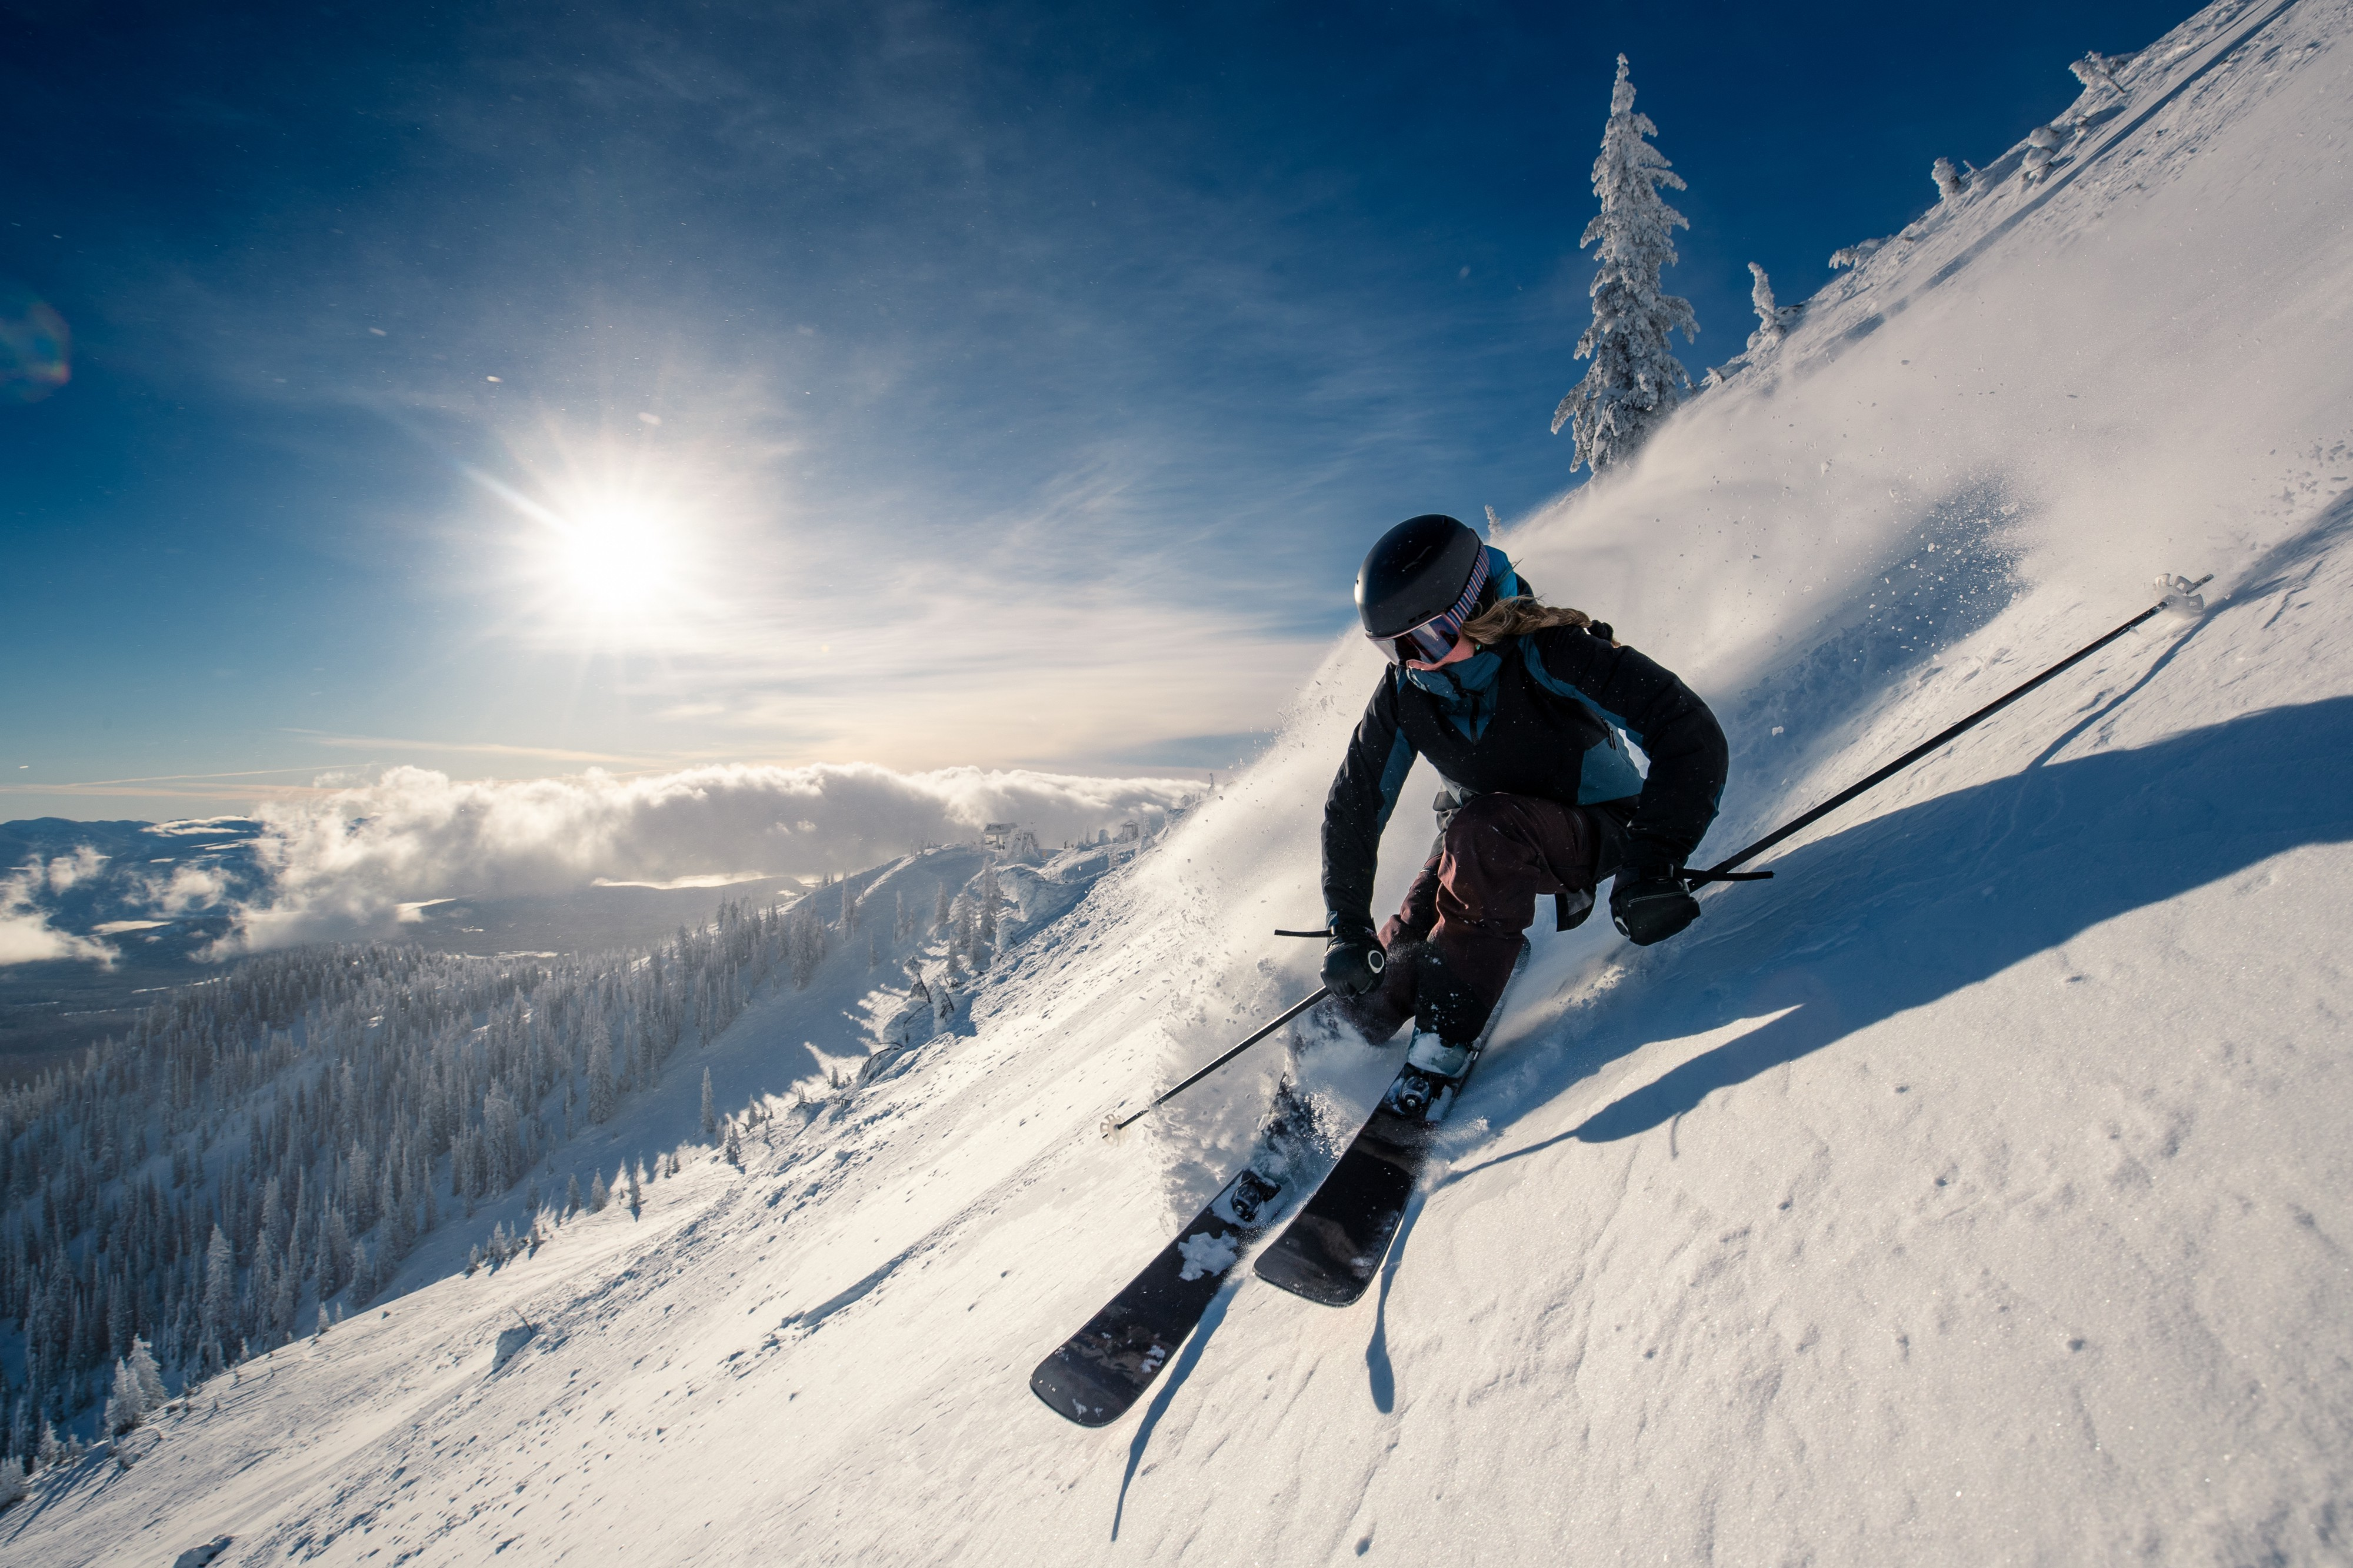 Skier cutting a turn on a slope with the sun in the background